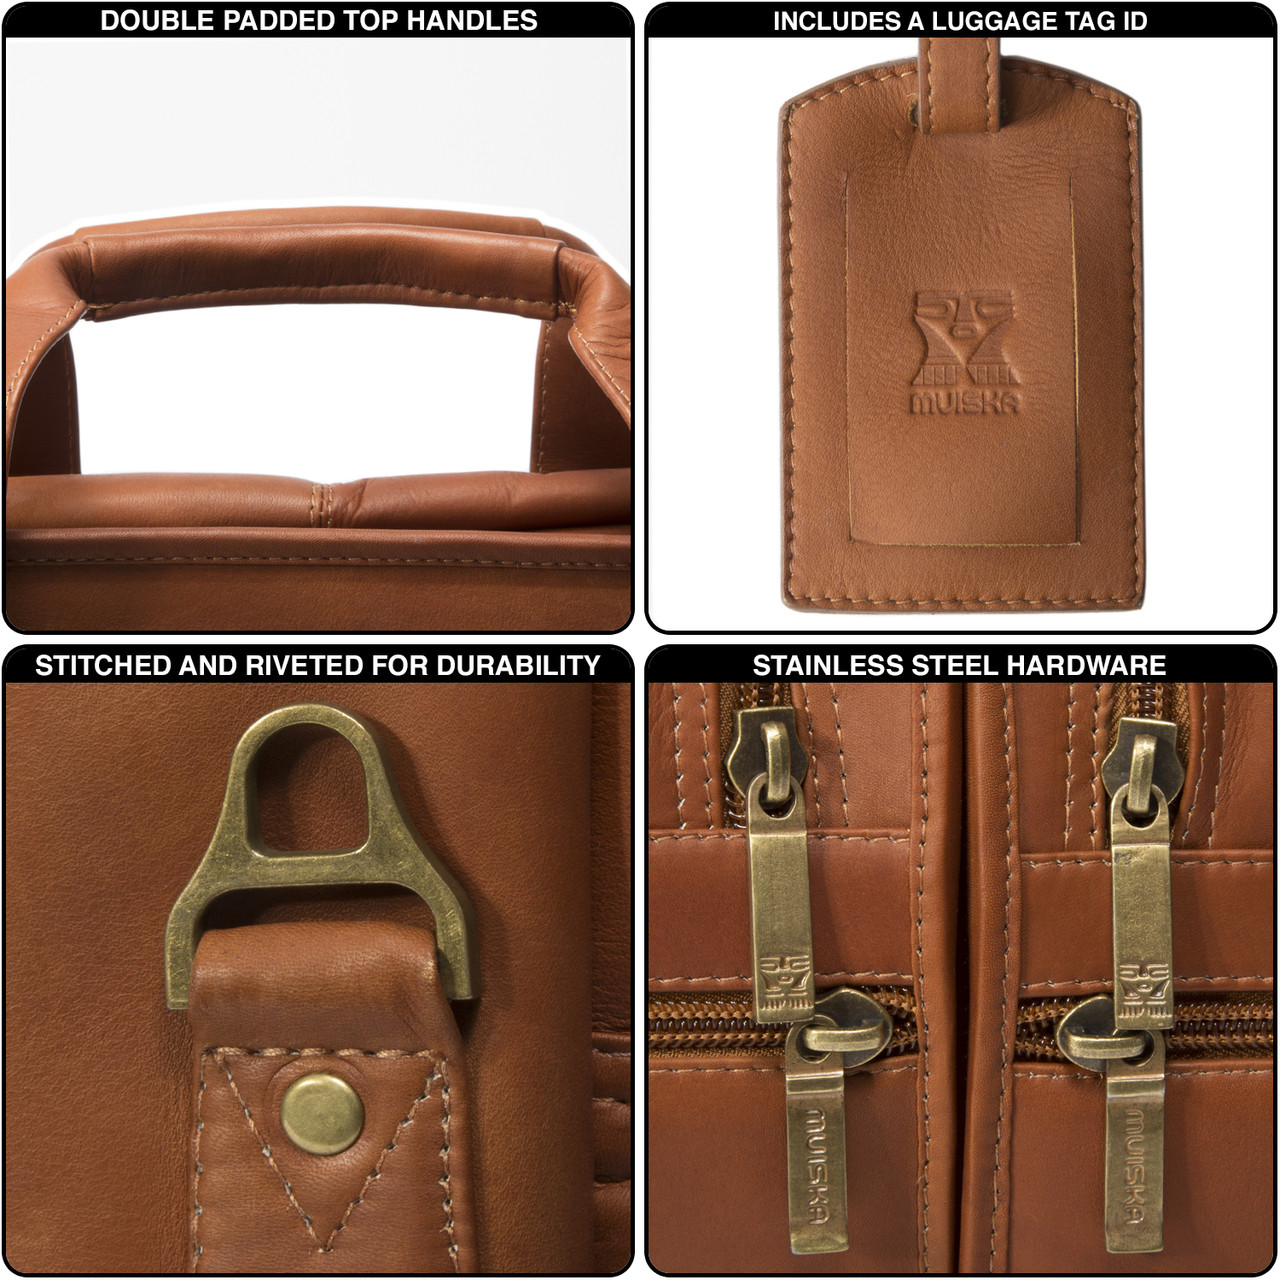 Muiska - New York - Double Compartment Leather Business Case- includes a beautiful leather luggage tag ID